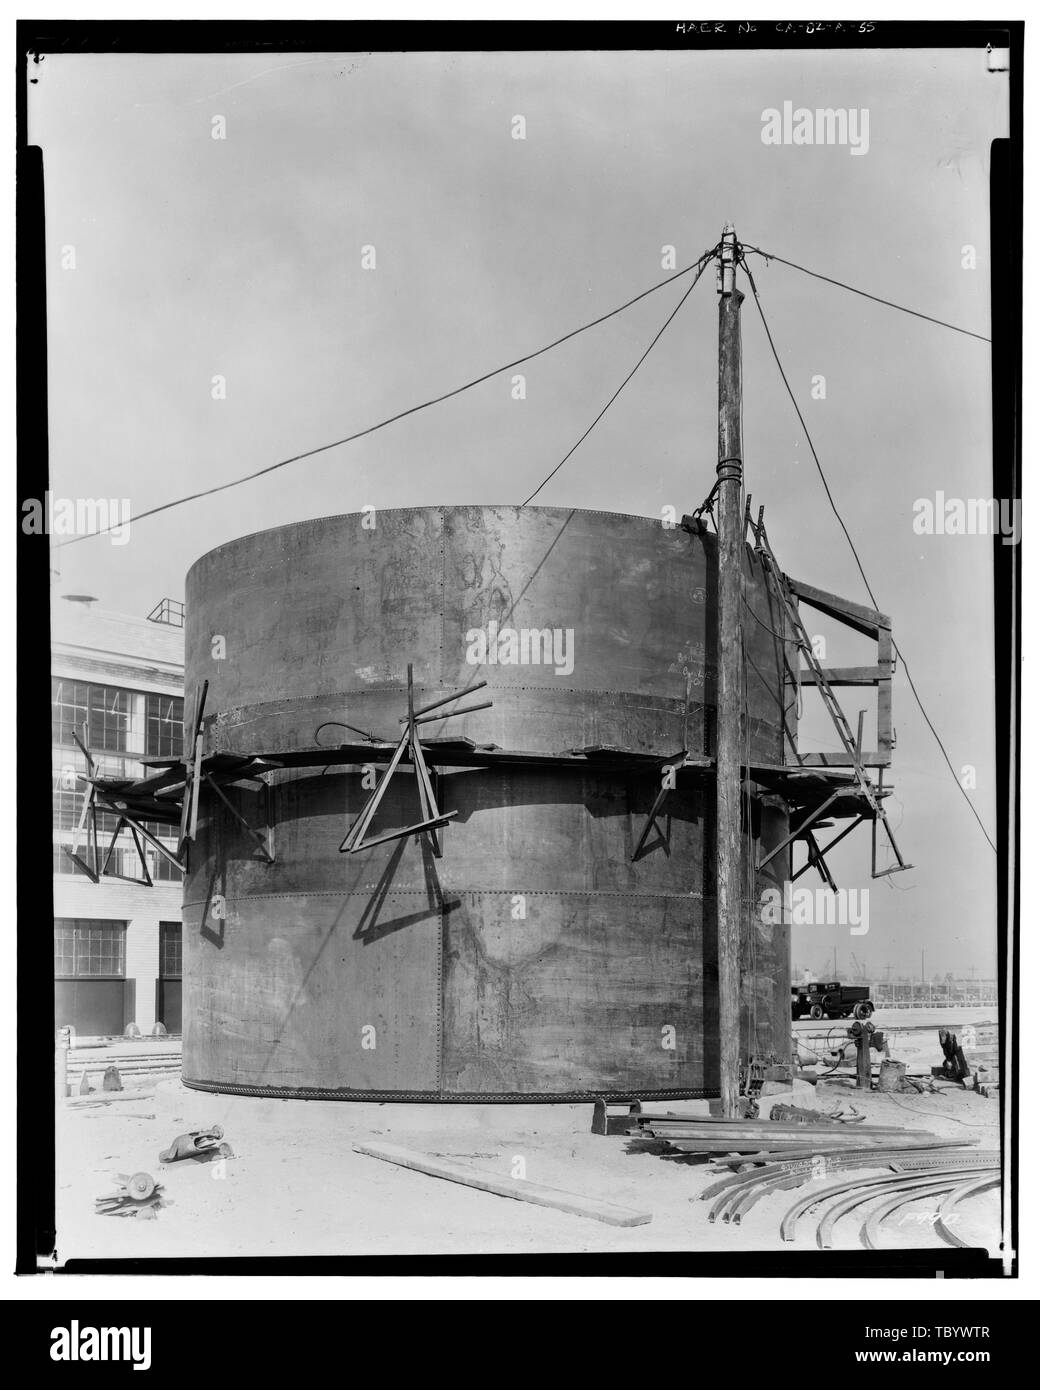 Neg. Nr. F99D, Dec 27, 1931 EXTERIORPRESSED STAHLBAU, EAST SIDE, DAS ÄUSSERE DES BONDERITE TANK Ford Motor Company Long Beach Montagewerk, Assembly Building, 700 Henry Ford Avenue, Long Beach, Los Angeles County, CA Stockbild